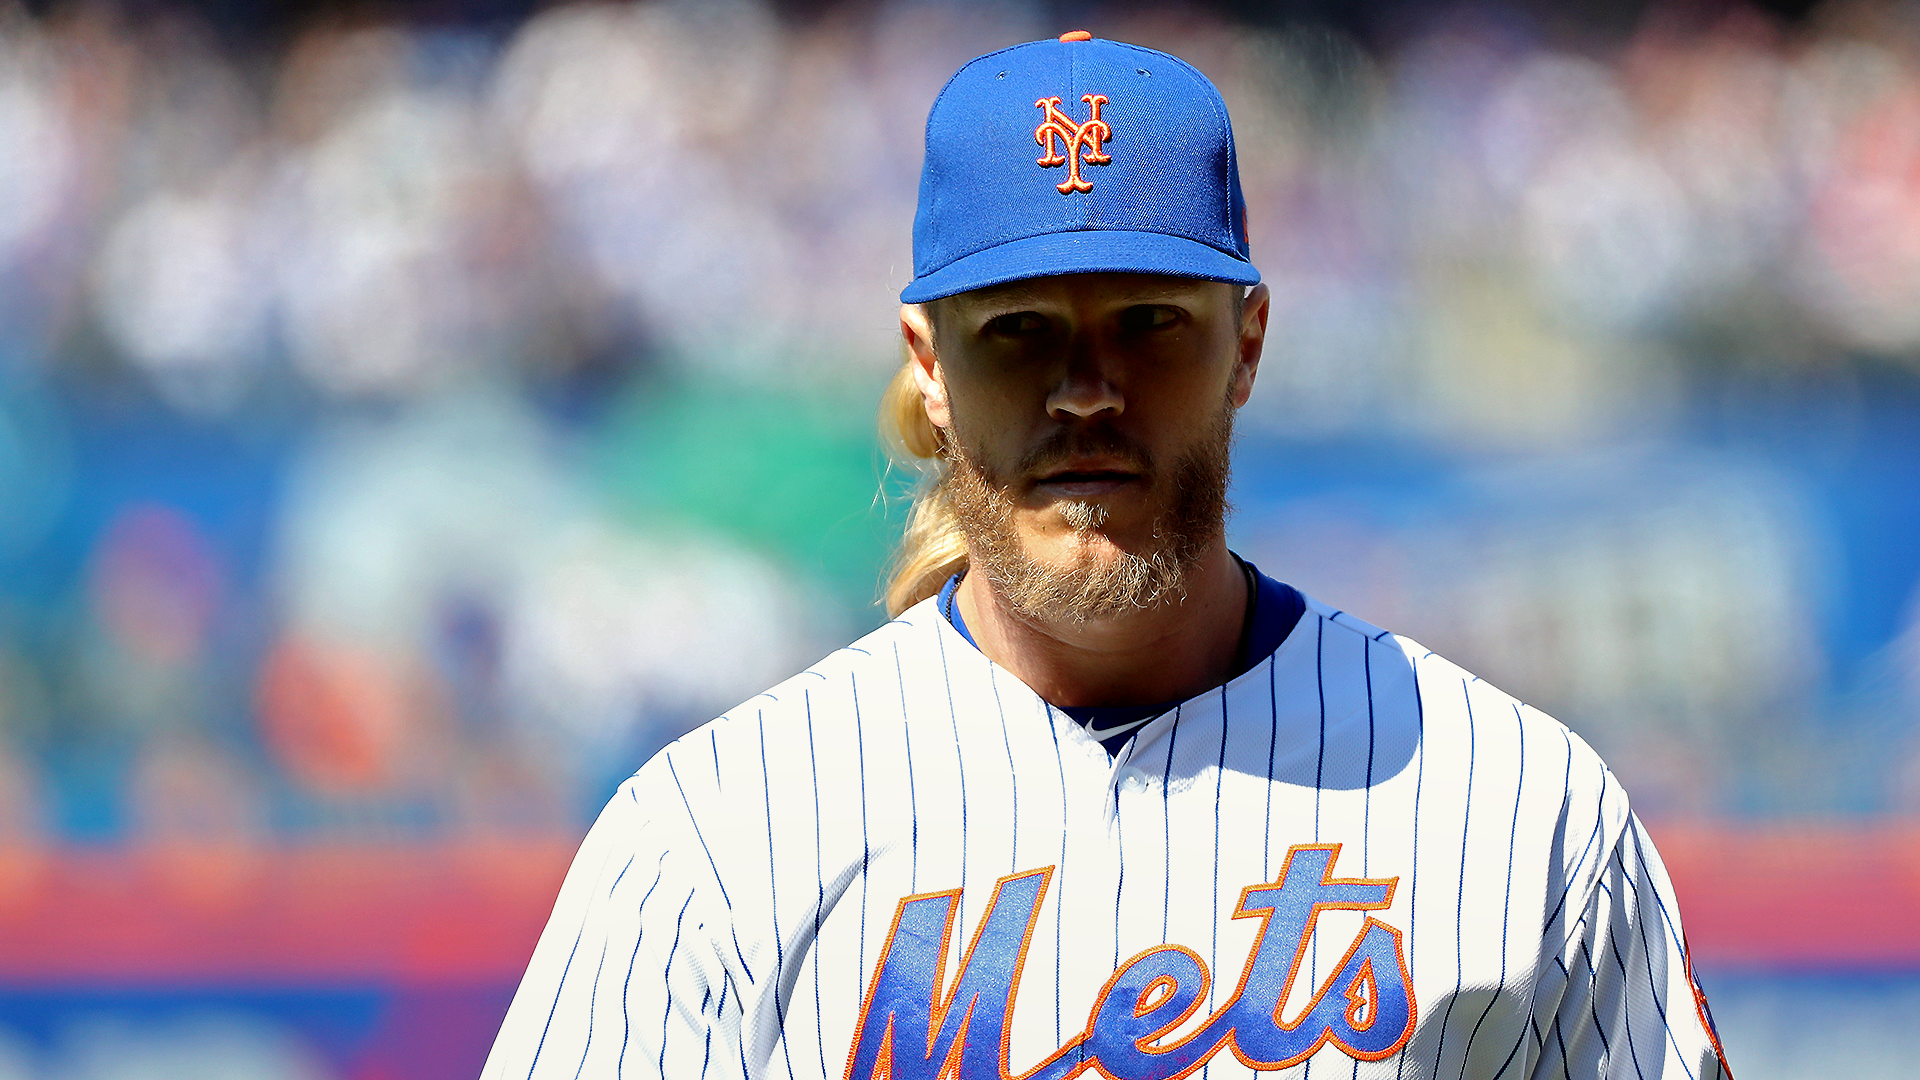 """Mets' Noah Syndergaard is furious with MLB's shutdown restrictions: """"Guess I'll see the pirates"""""""